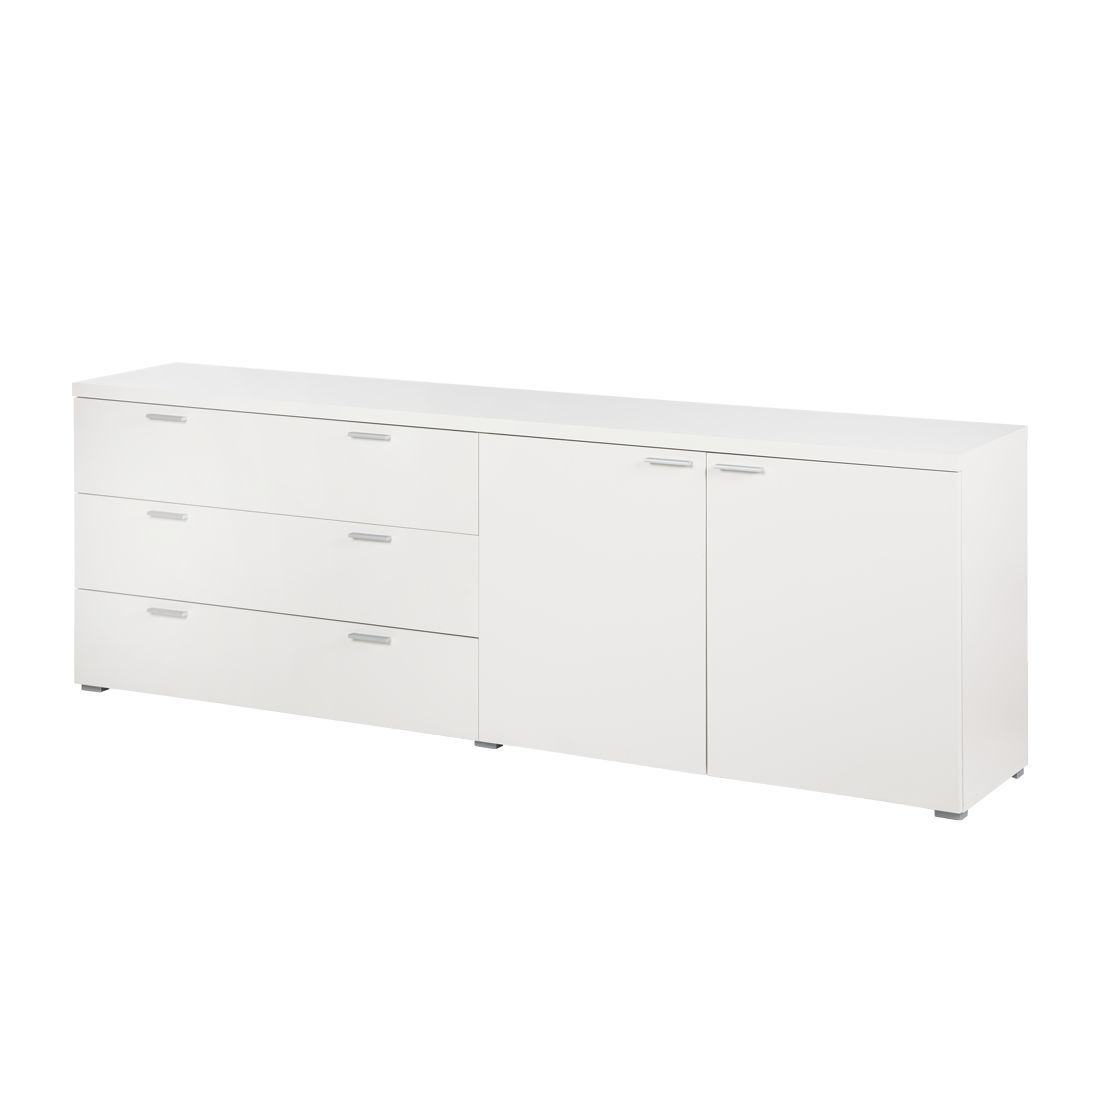 Sideboard Creme Matt Sideboard Highlife Weiß Creme Sideboard Highlife Weiß